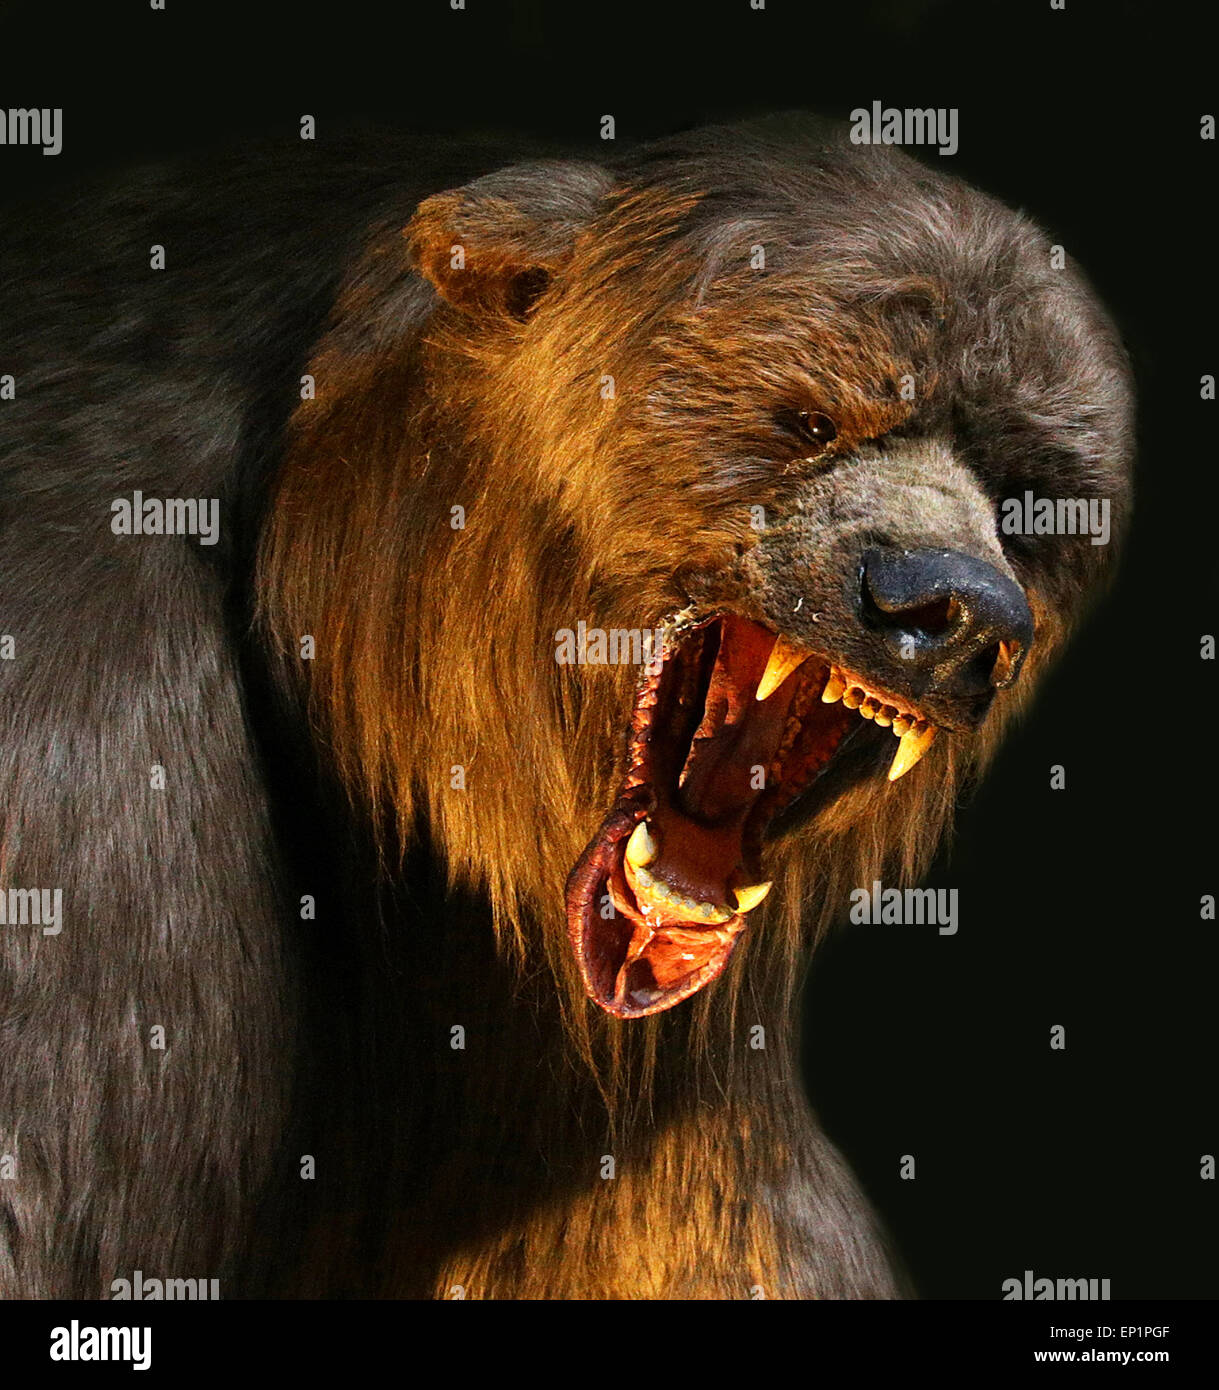 Grizzly Bear Angry Stock Photos Amp Grizzly Bear Angry Stock